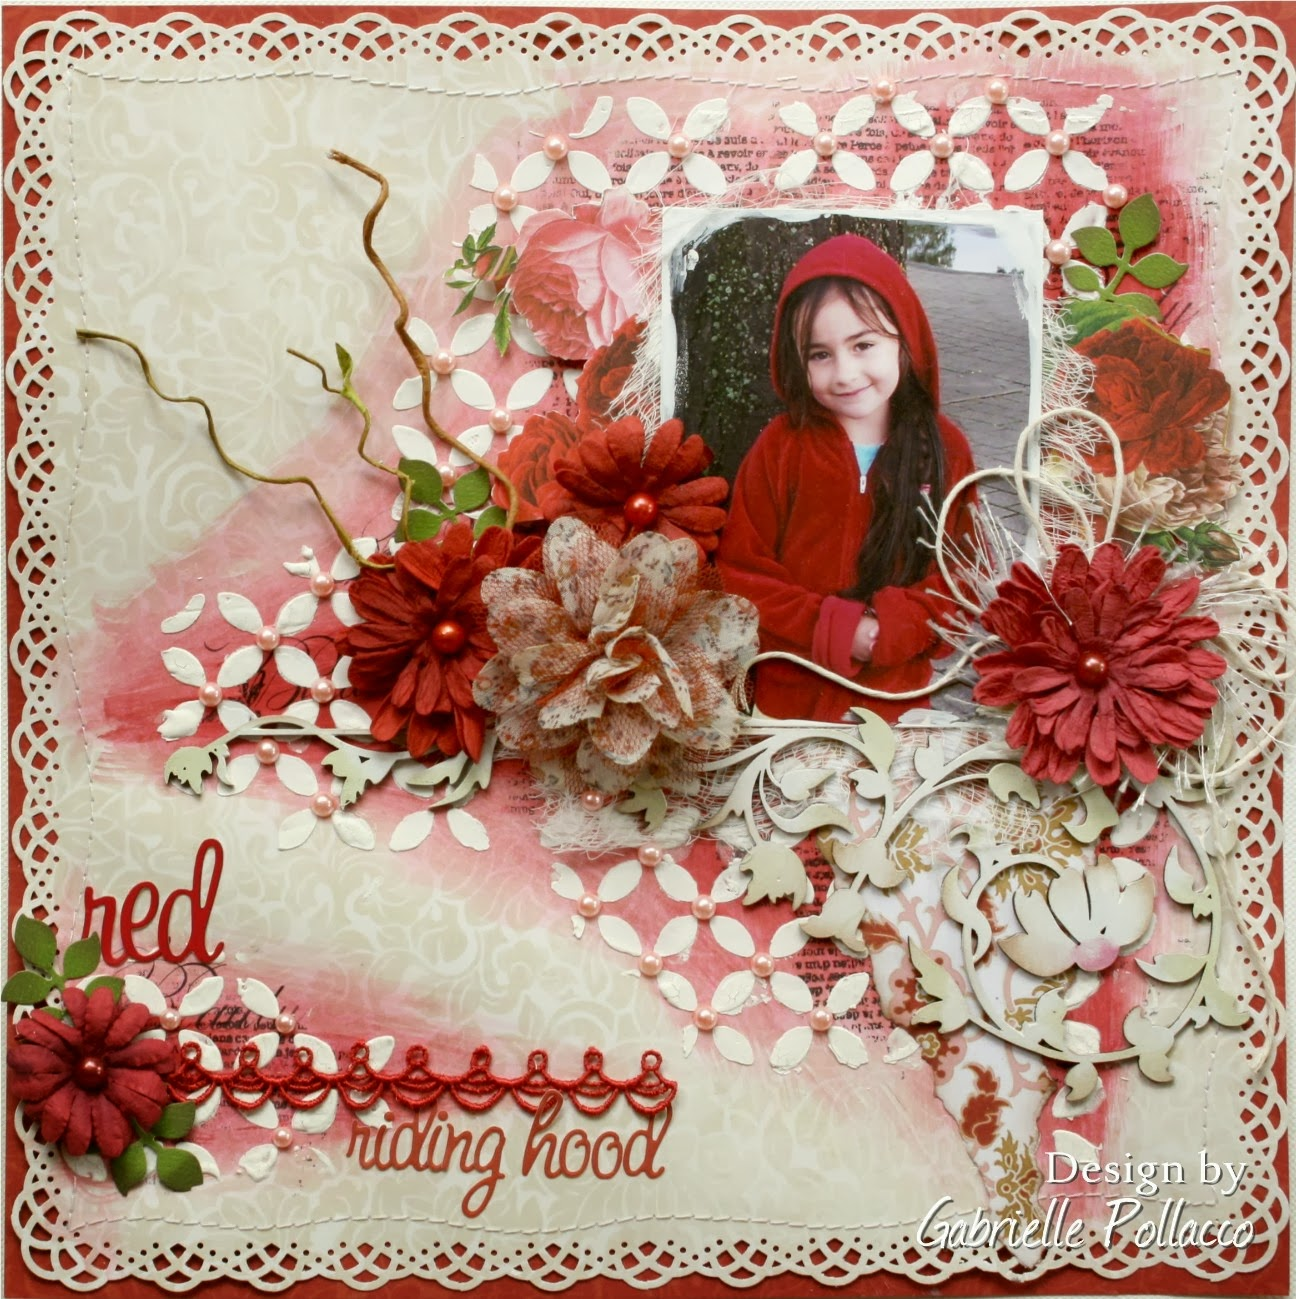 Scrapbook ideas for sister